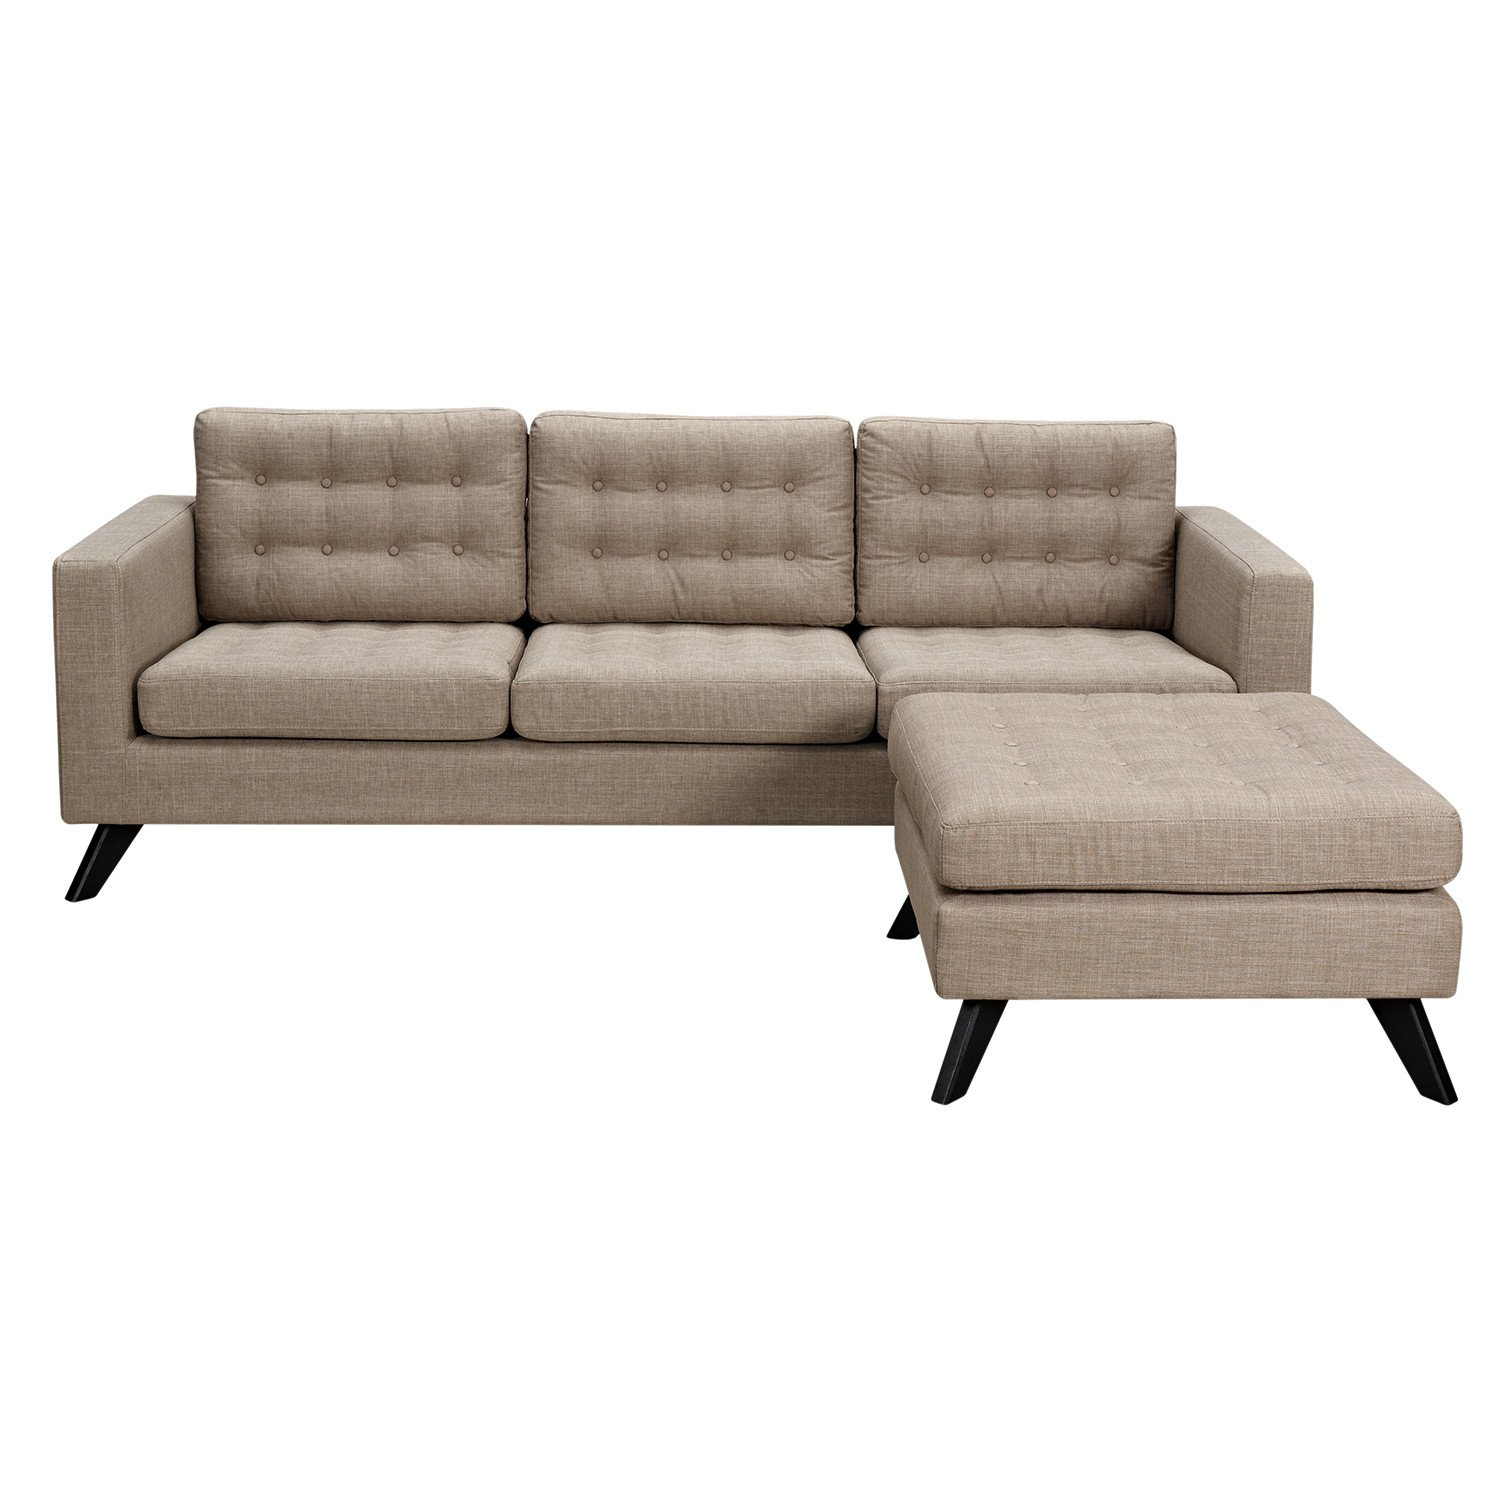 office sofa set. Mina Sofa Light Sand Set - Black Office